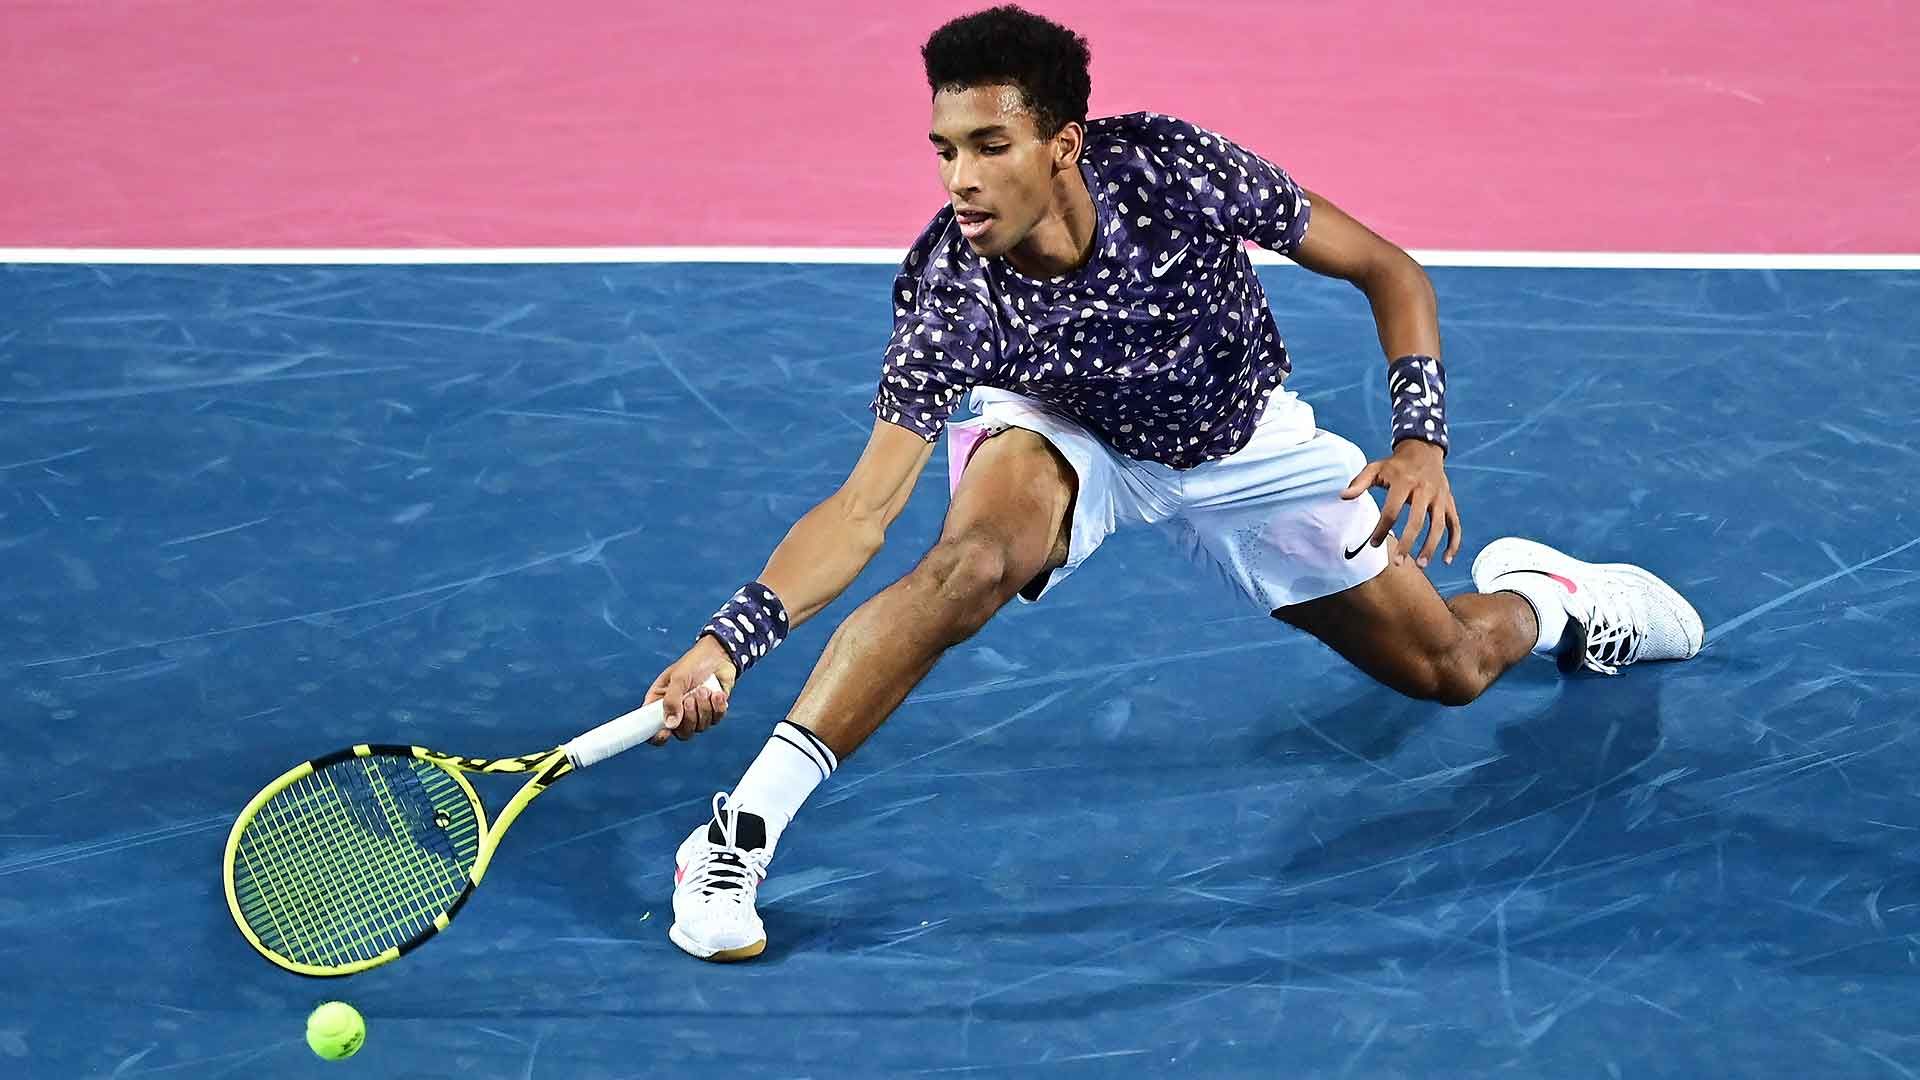 Felix Auger-Aliassime is looking to reach his second ATP Tour semi-final of 2020 this week in Montpellier.